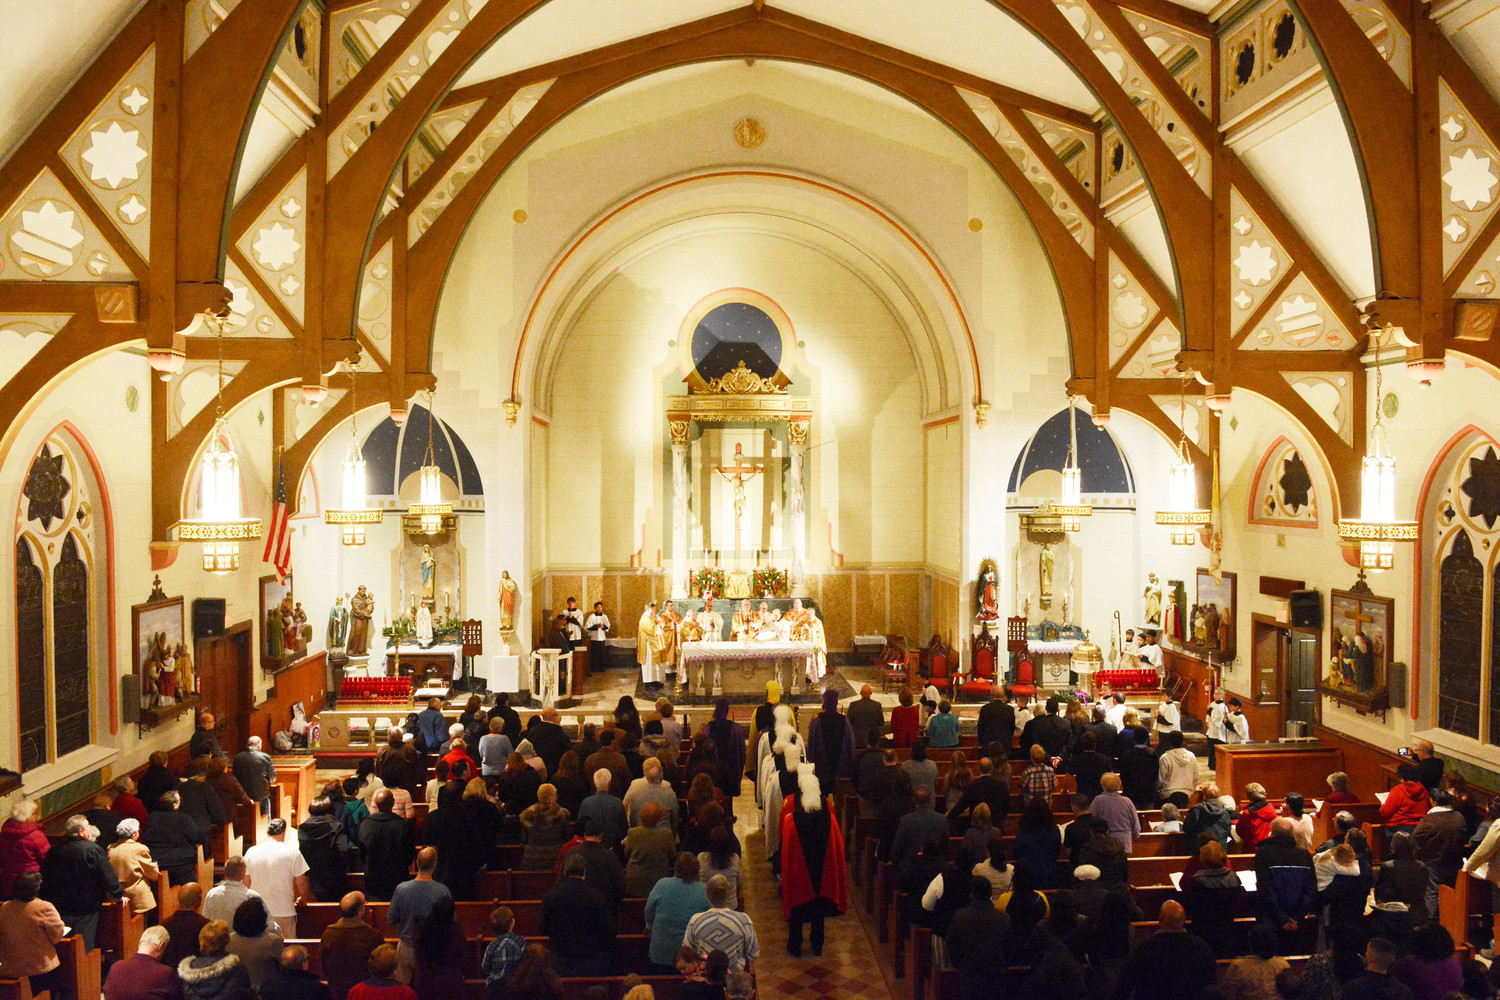 Cardinal Dolan celebrated a Mass to mark the 150th anniversary of St. Joseph's parish in Middletown Dec. 2. An overhead view reveals the character of the church's interior.